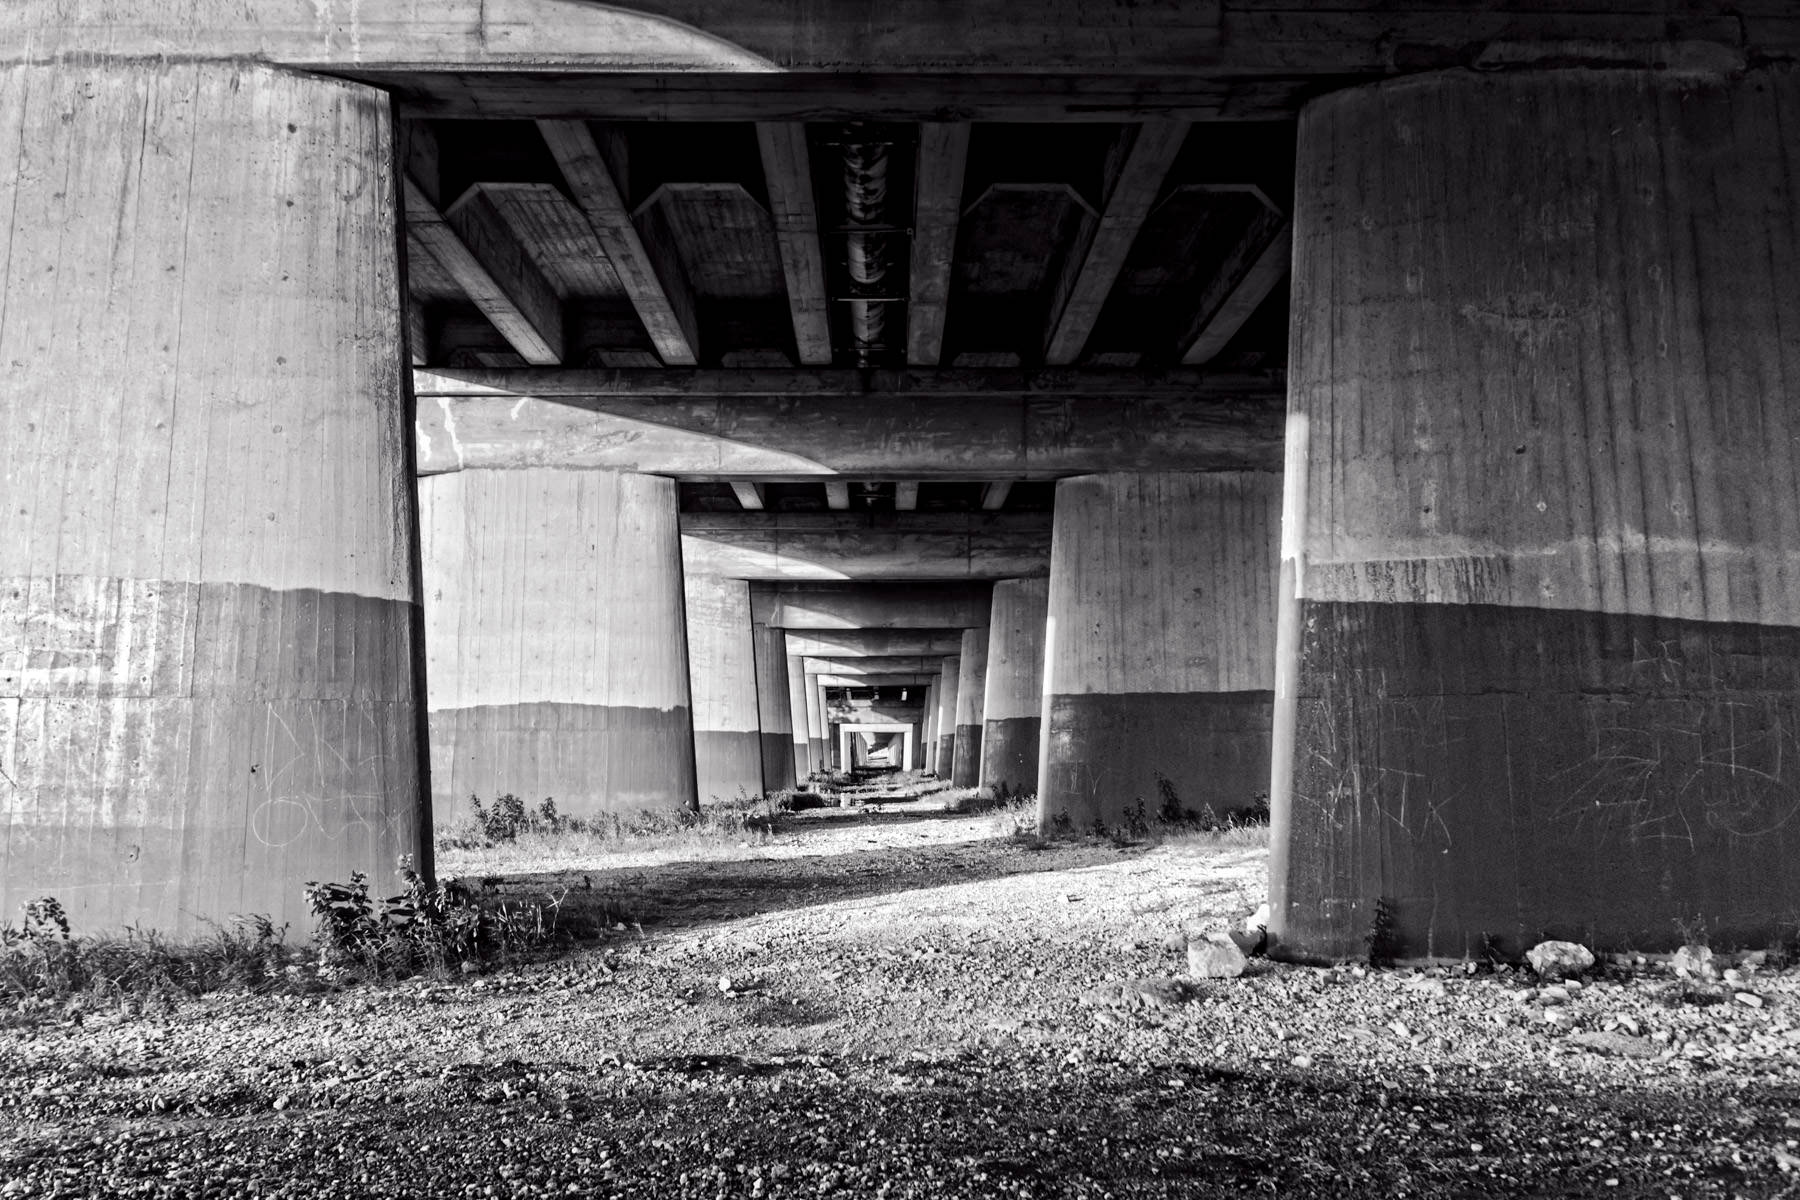 Underneath the Commerce Street Viaduct, Dallas.